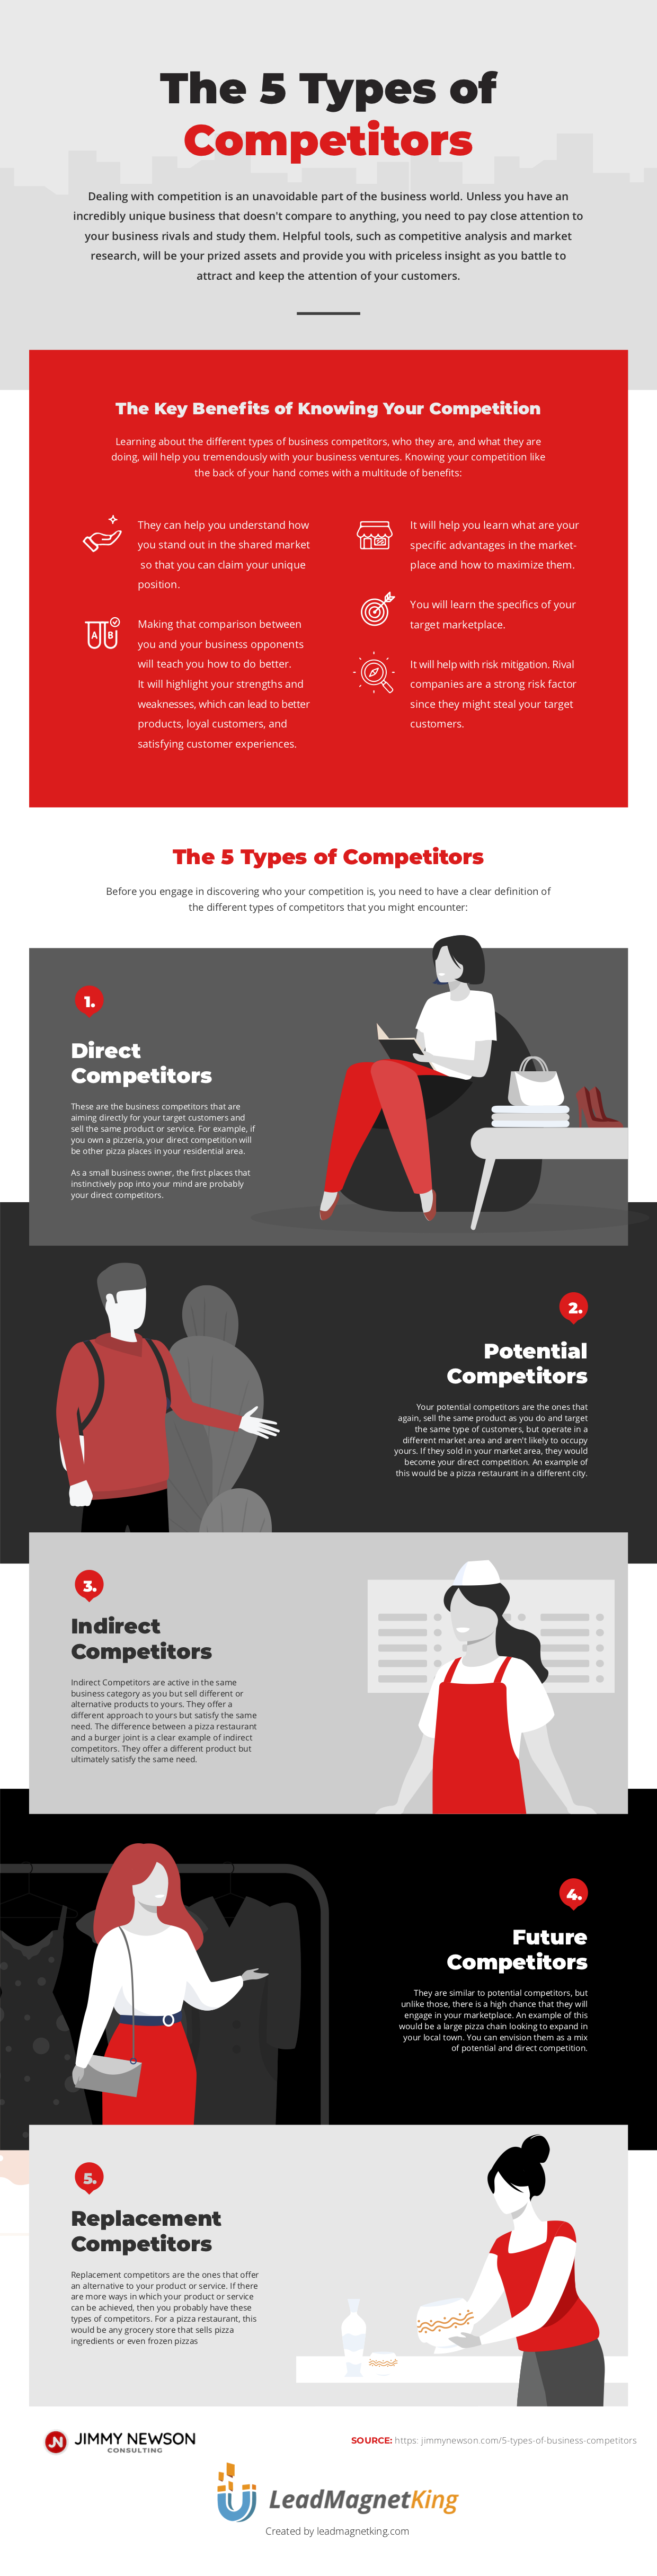 The 5 Types of Business Competitors Infographic - Jimmy Newson Consulting